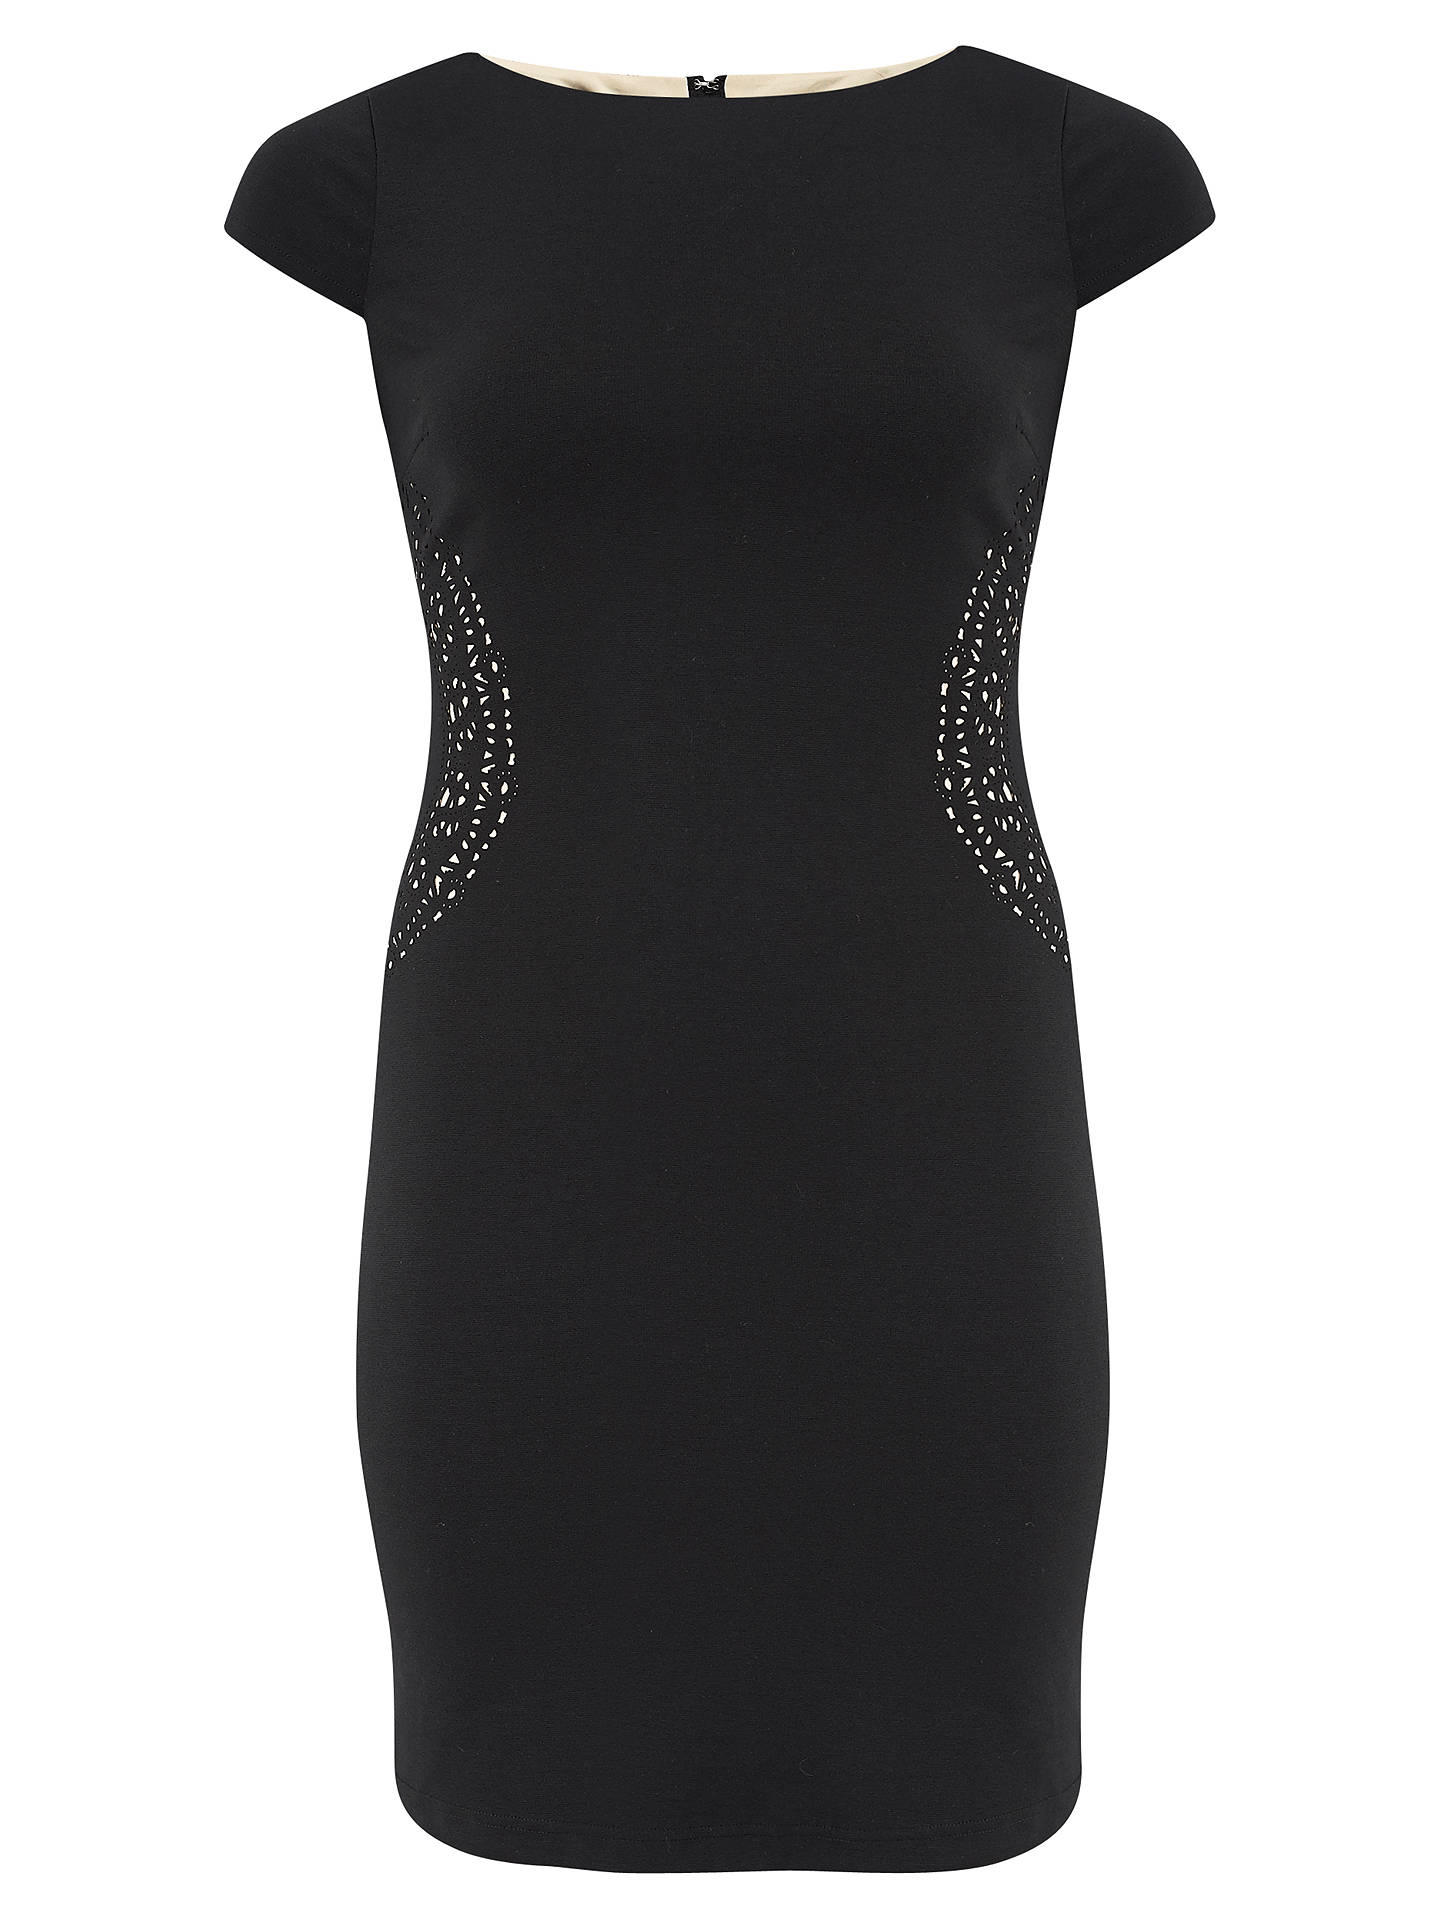 BuyChesca Cut-Out Ponte Shift Dress, Black, 12 Online at johnlewis.com